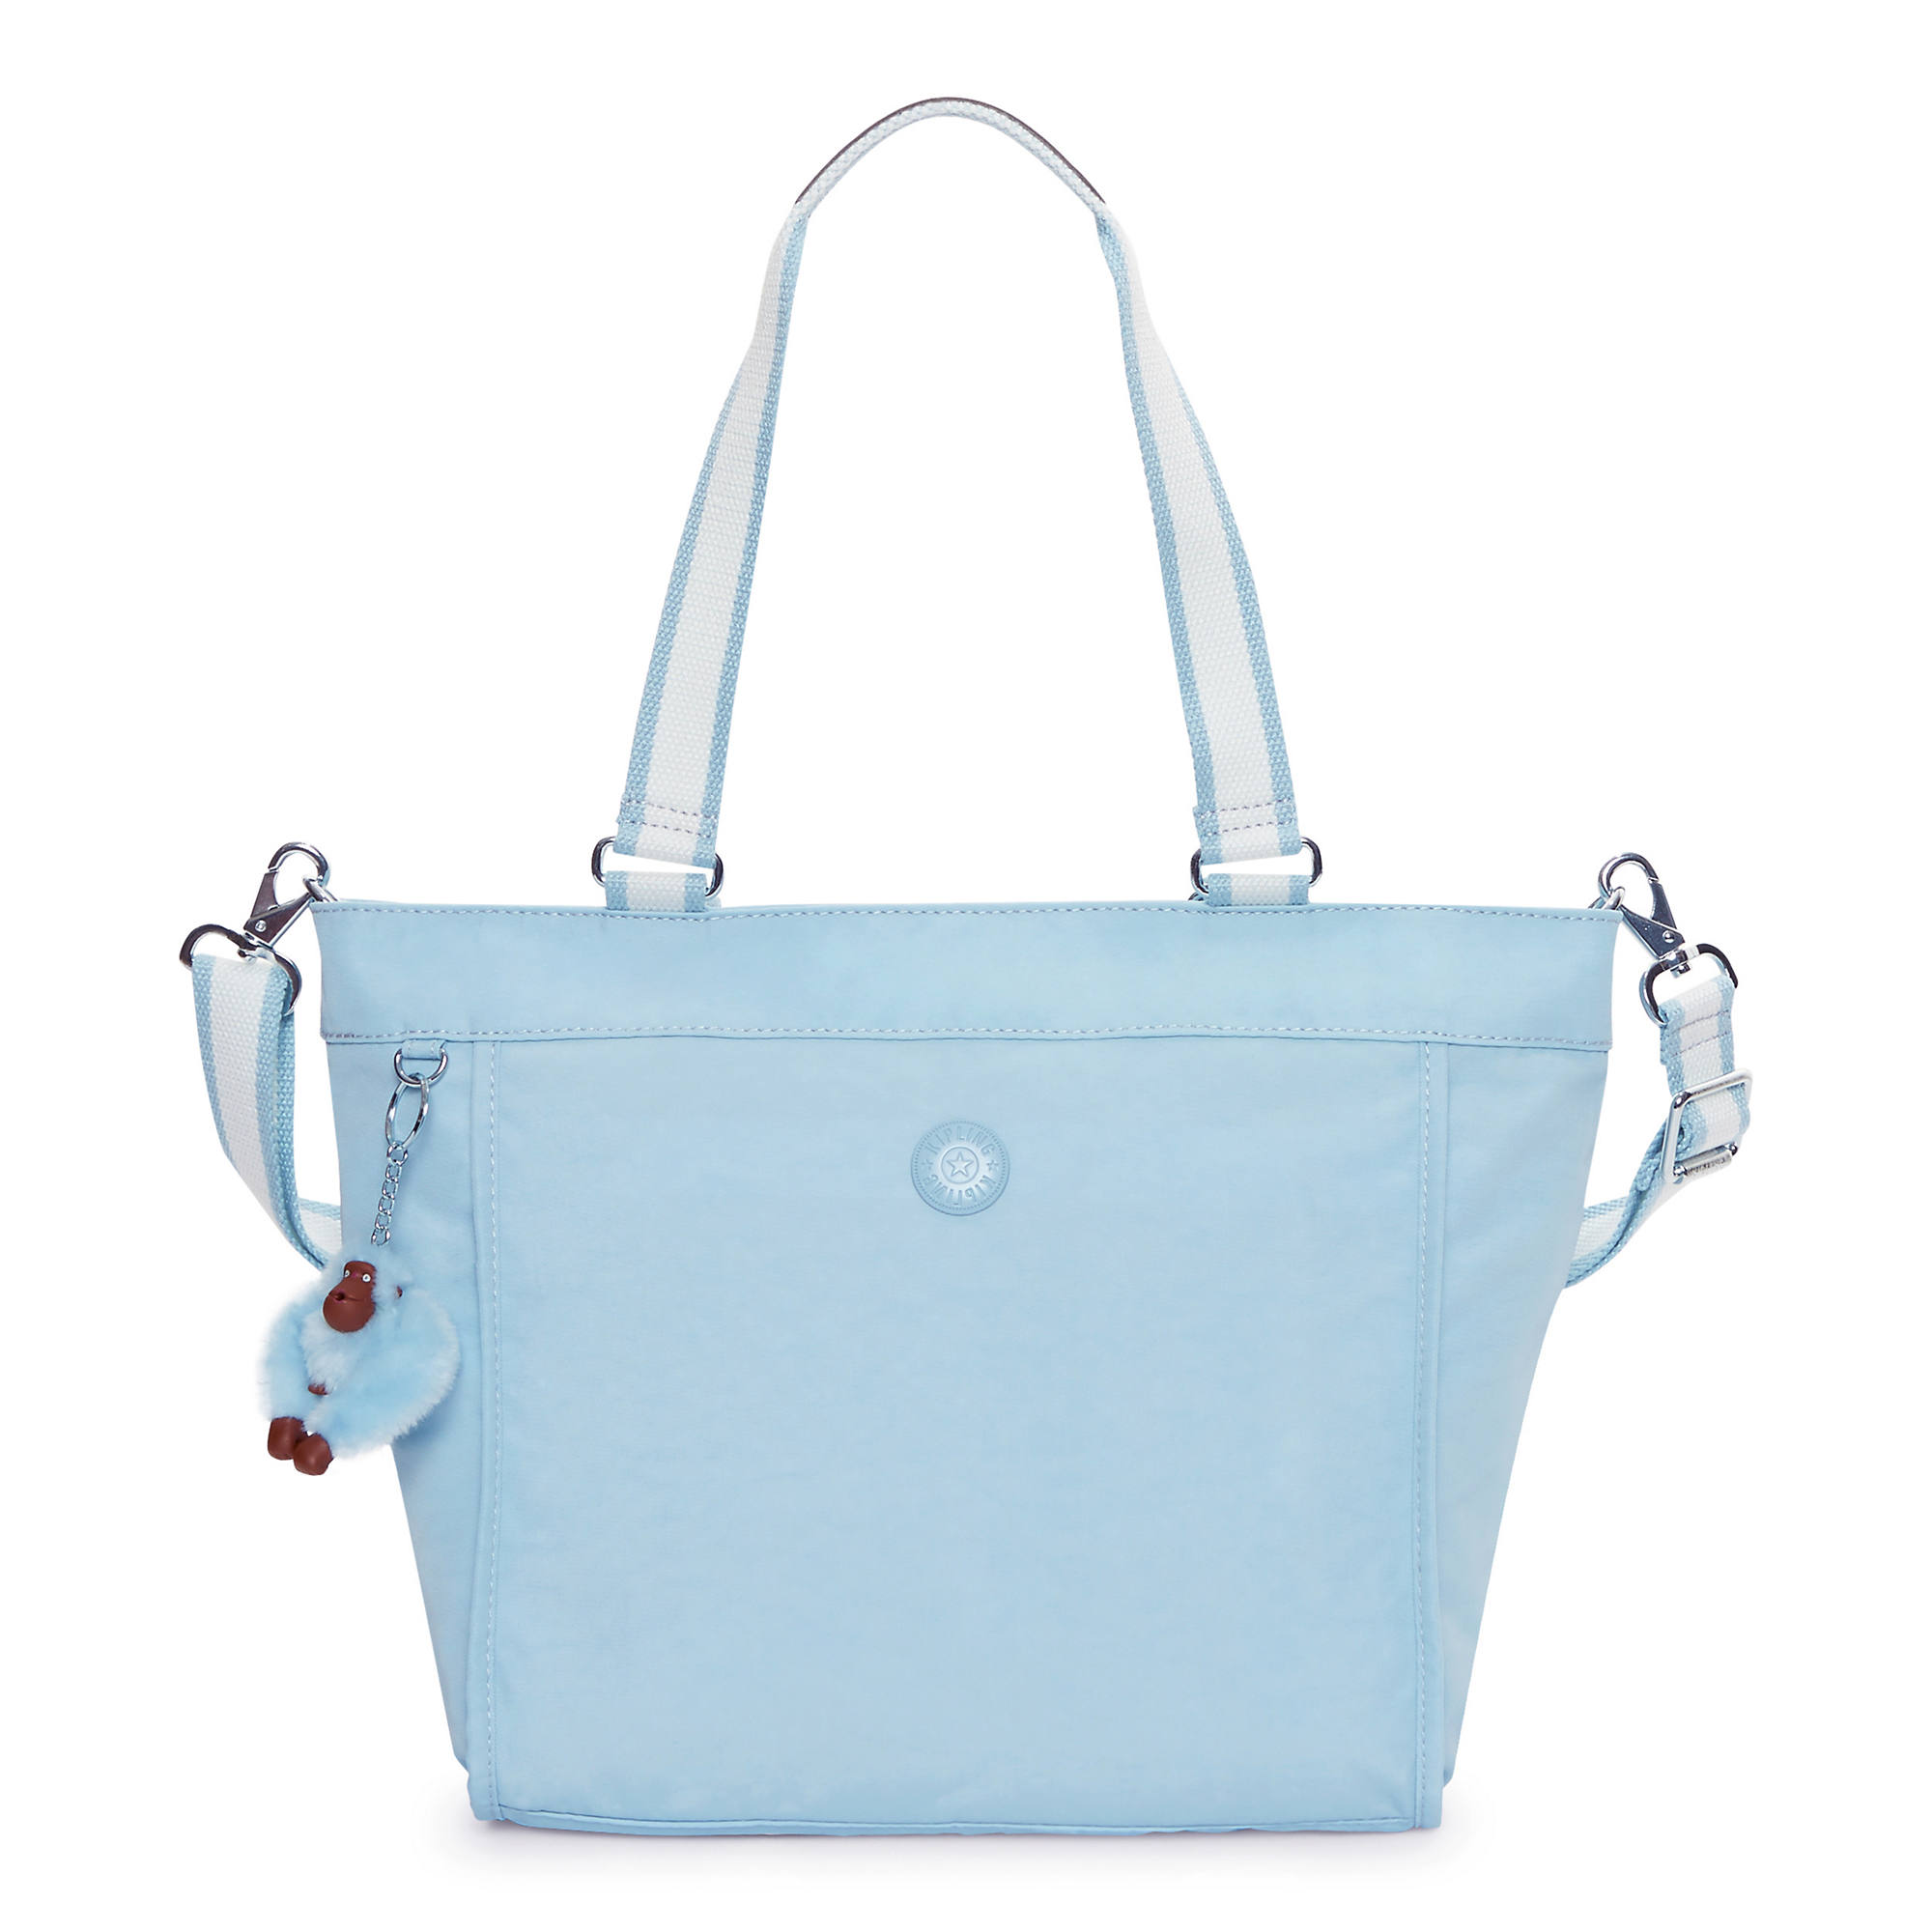 Buy Tote Bags at Macy's! FREE SHIPPING with $99 purchase! A great selection of leather totes, faux leather totes, designer totes & more totes at Macy's!